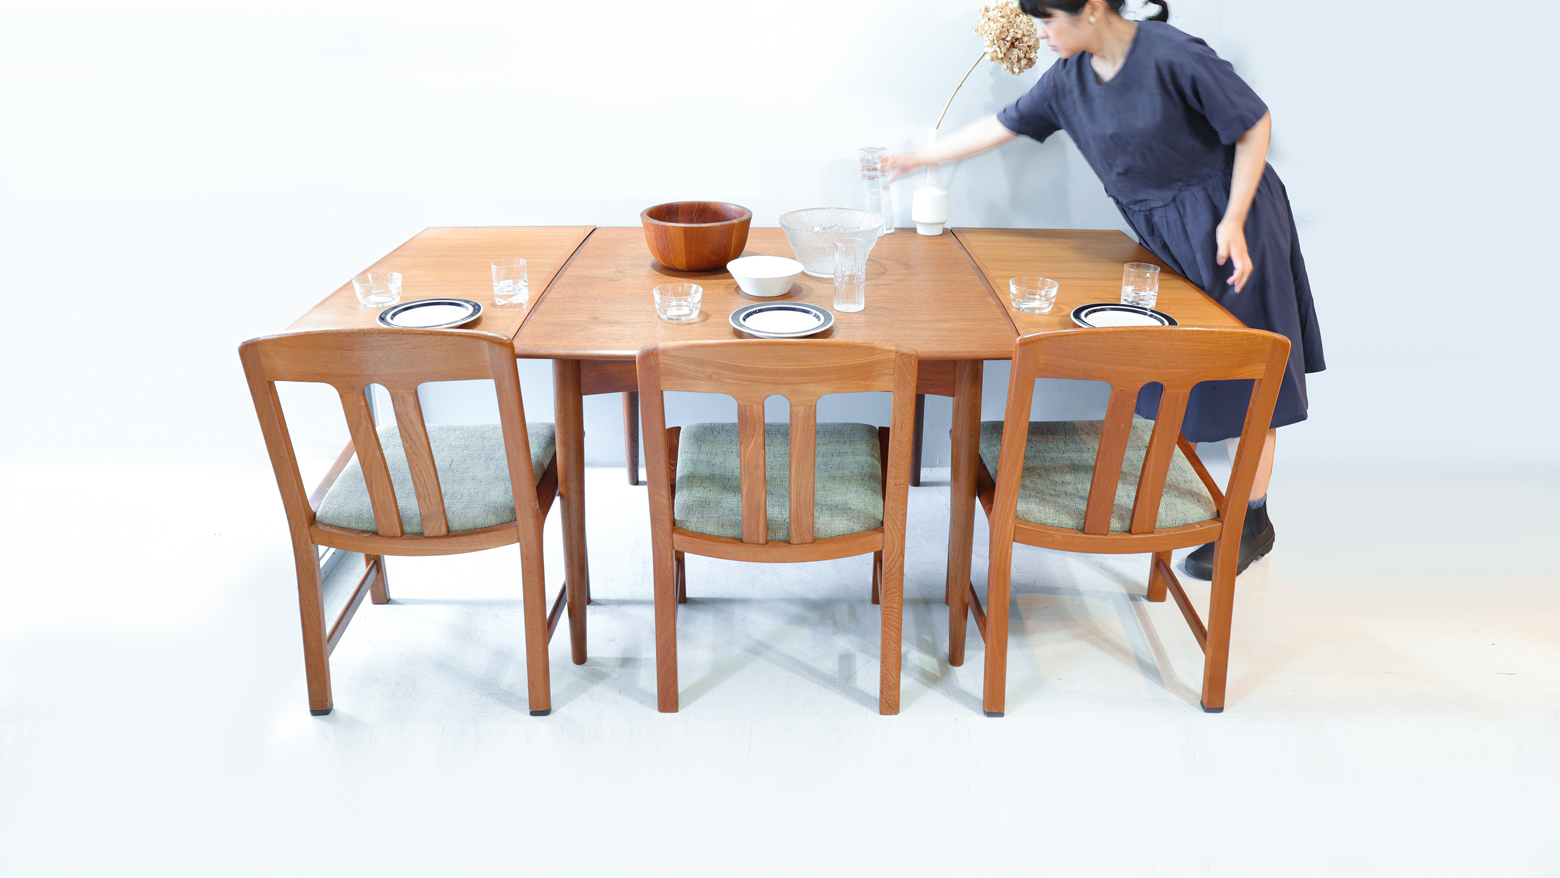 Danish Vintage Extending Dining Table/デンマーク ヴィンテージ エクステンション ダイニング テーブル 北欧家具